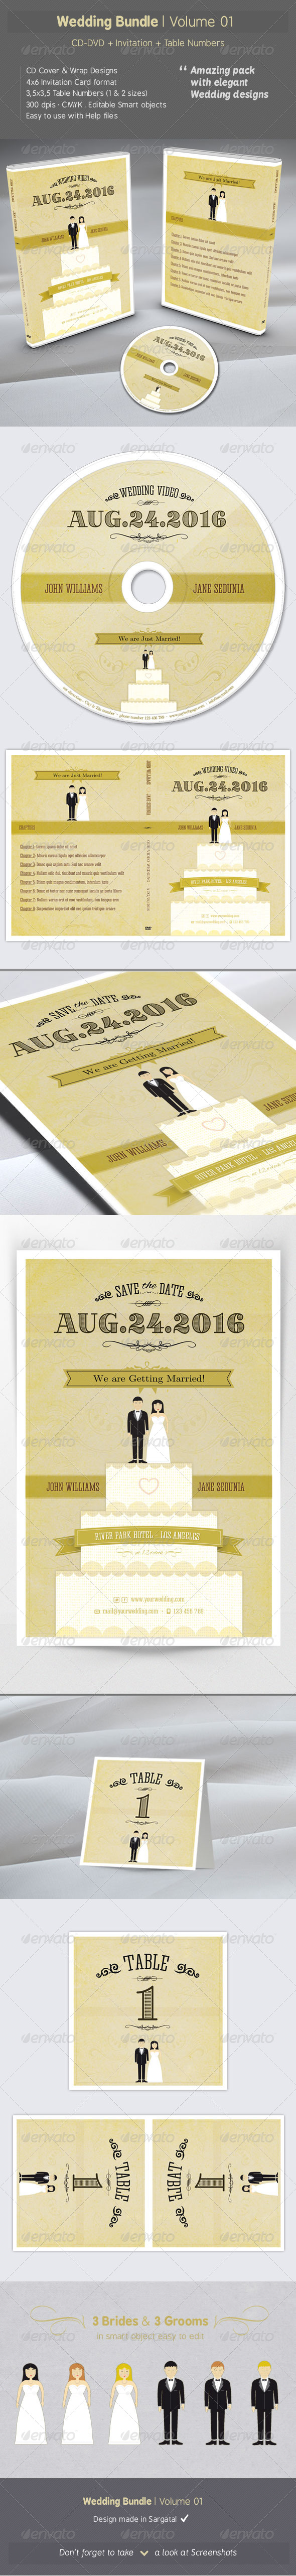 Wedding Bundle - Volume 01 - Weddings Cards & Invites